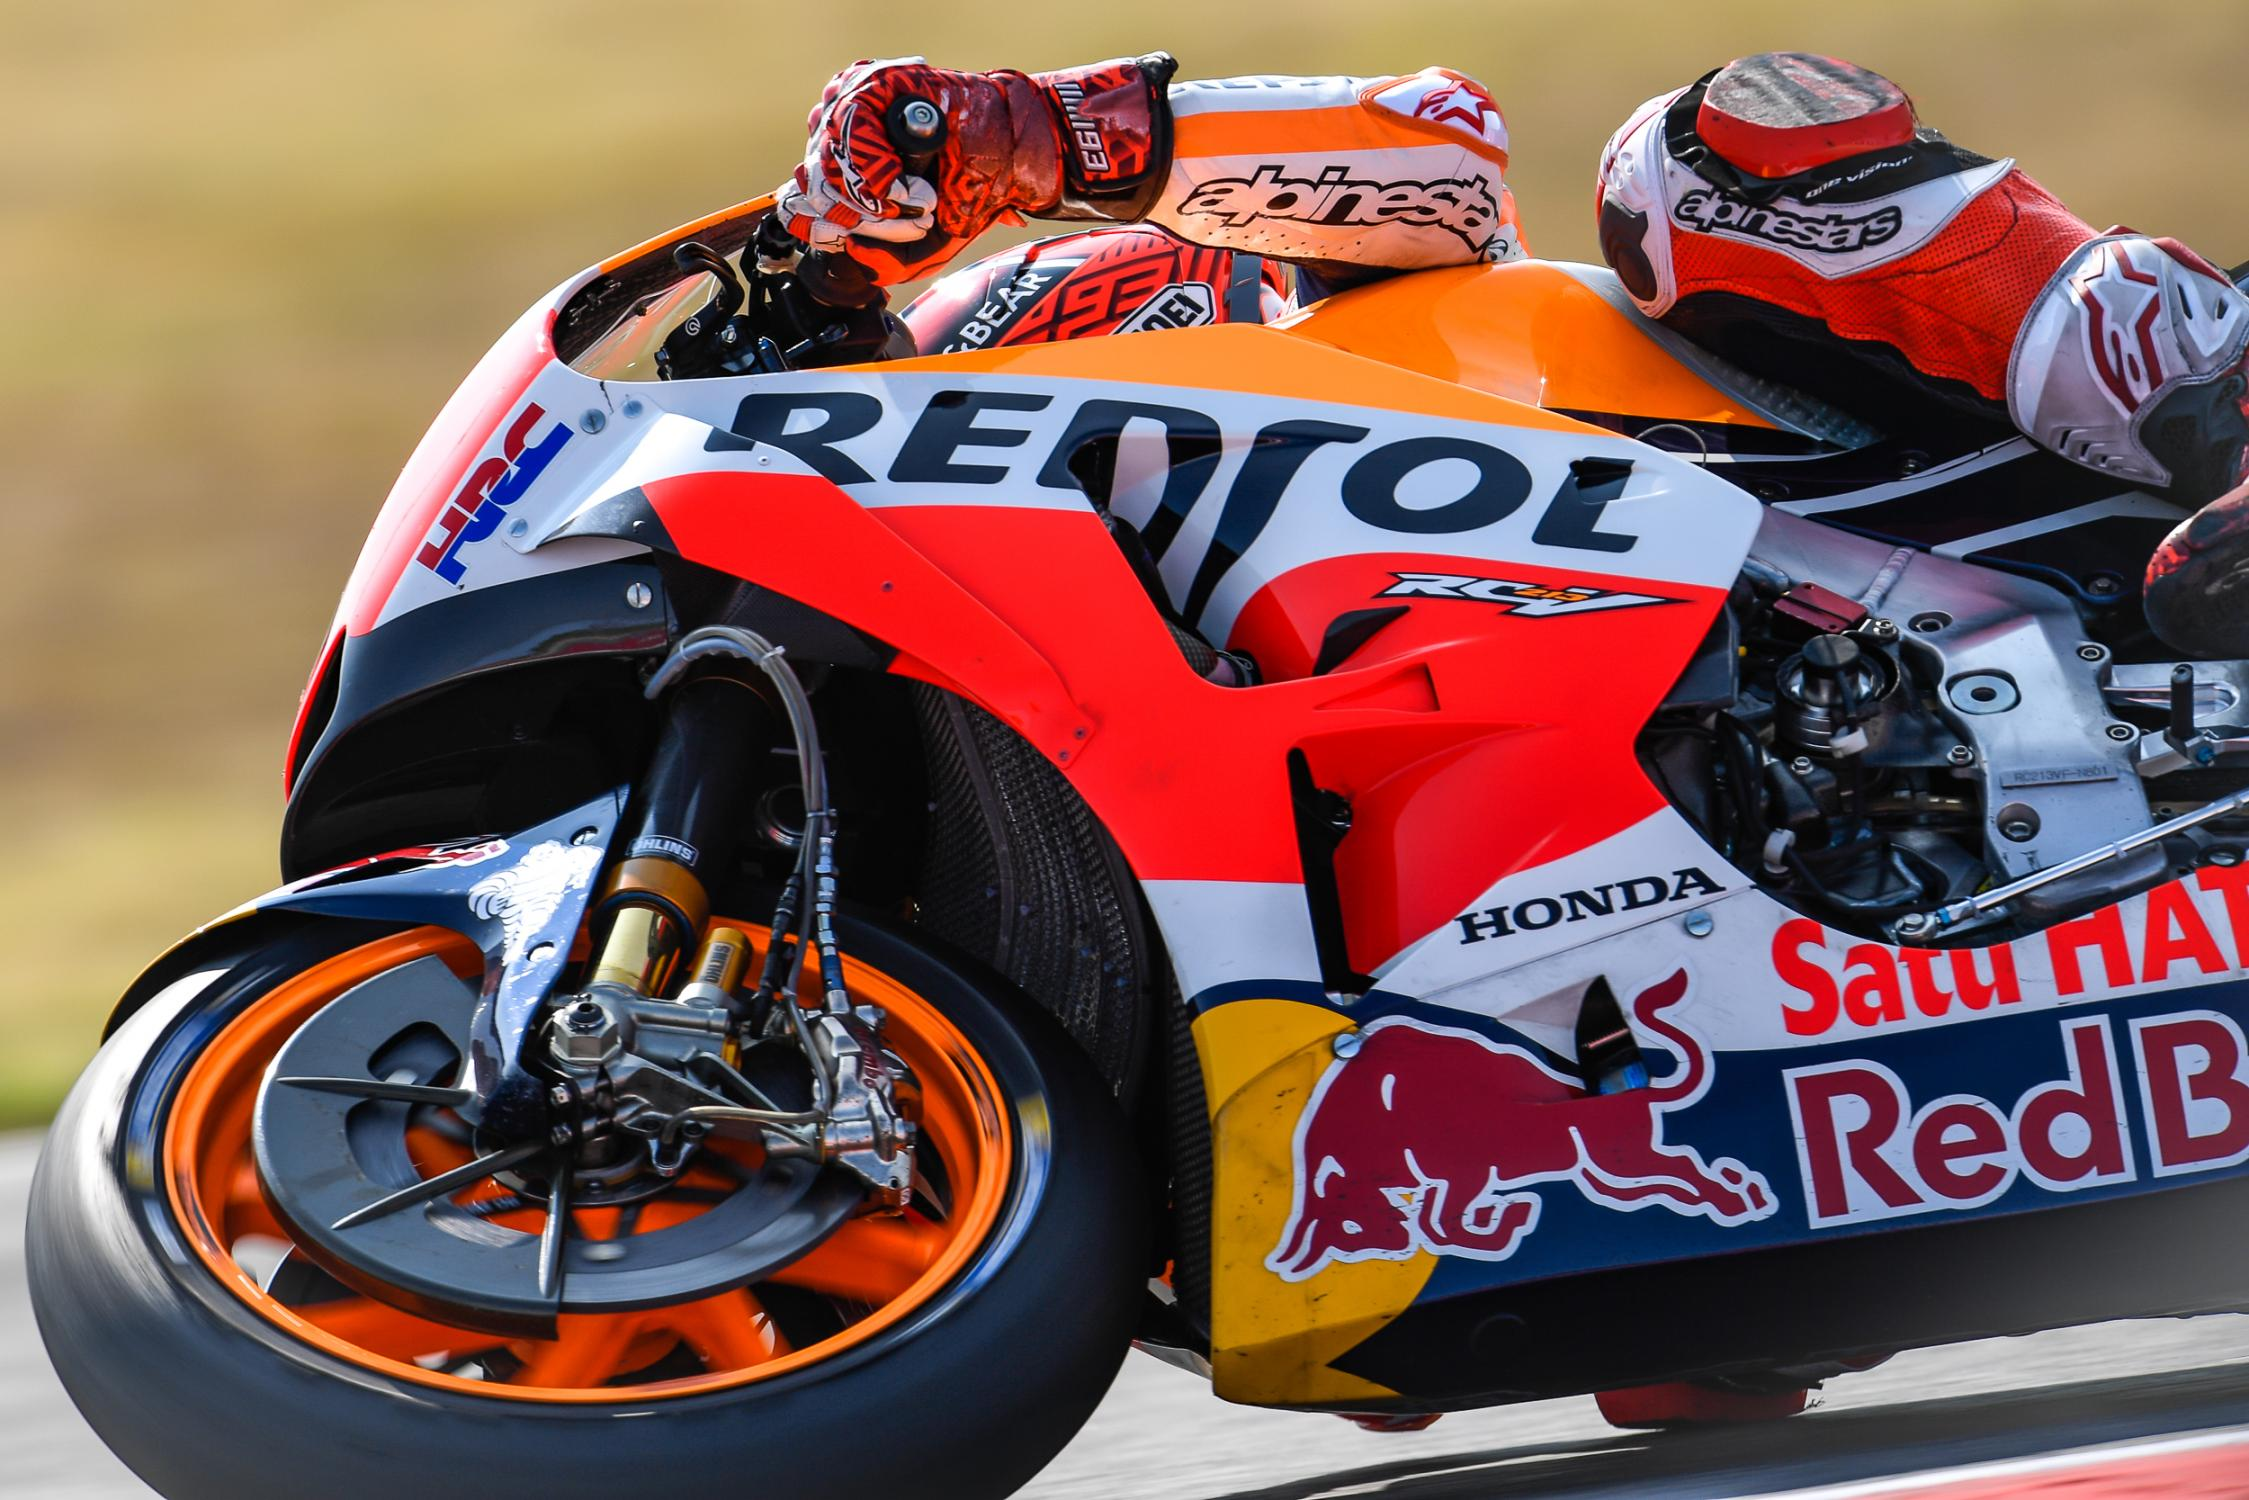 93-marc-marquez-esp_dsc6581.gallery_full_top_fullscreen.jpg